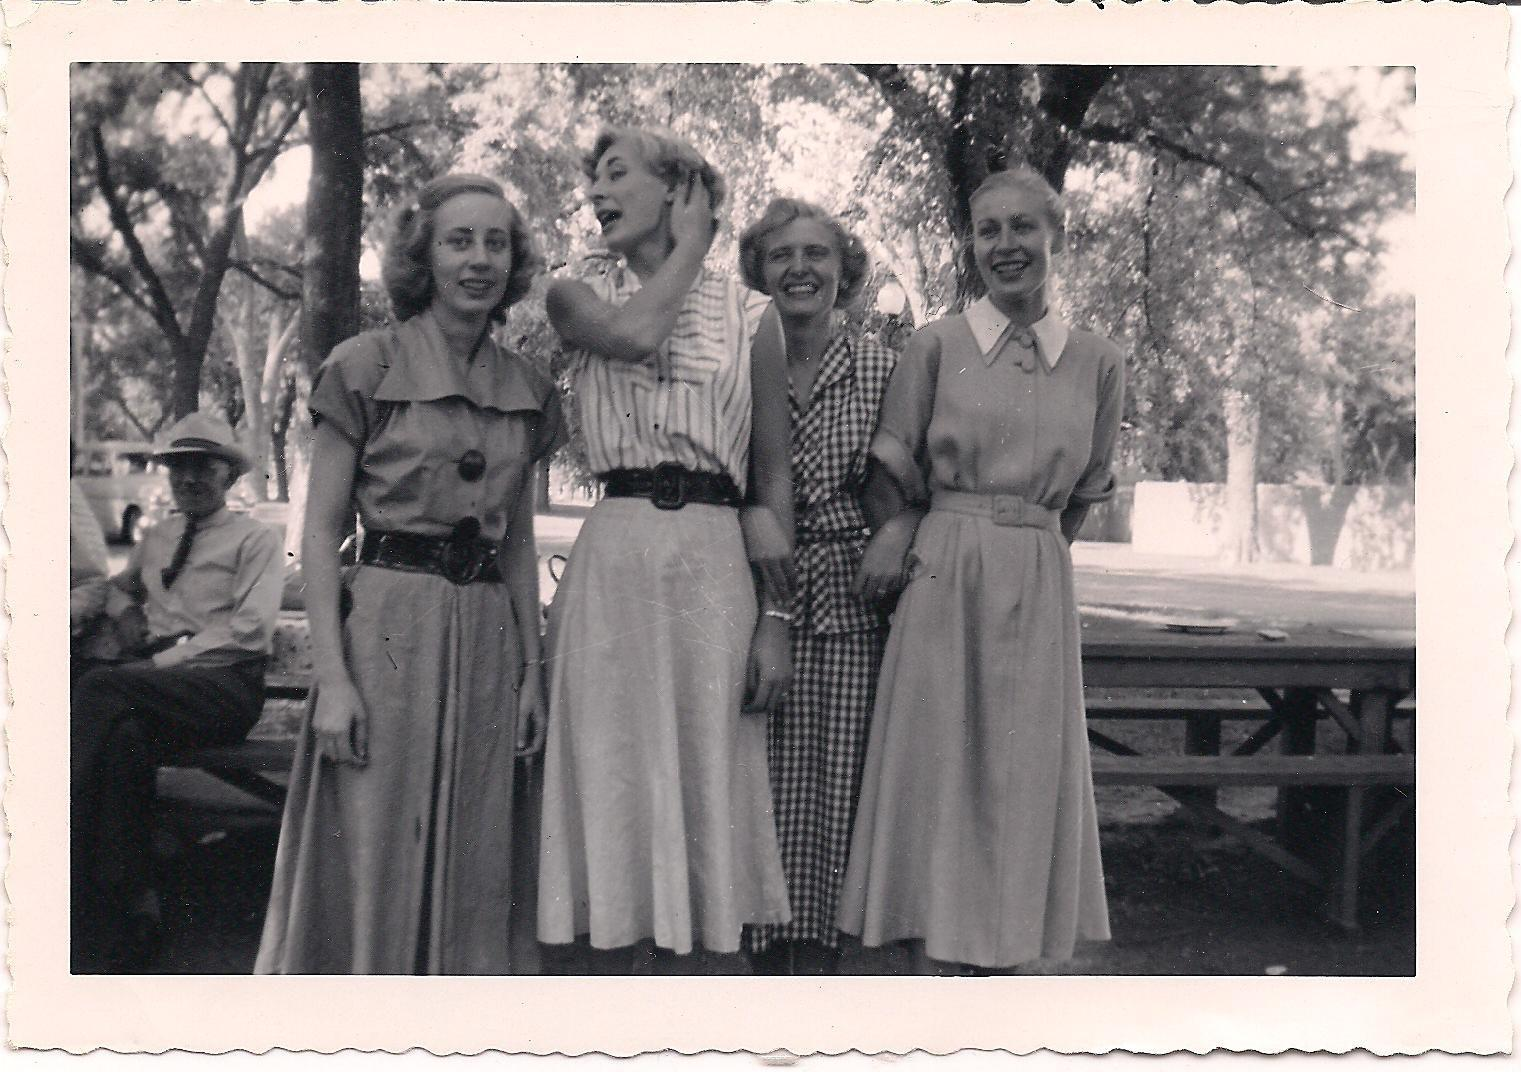 Beautiful Sisters - Lorene, Norma Ann, Wilma and Evelyn